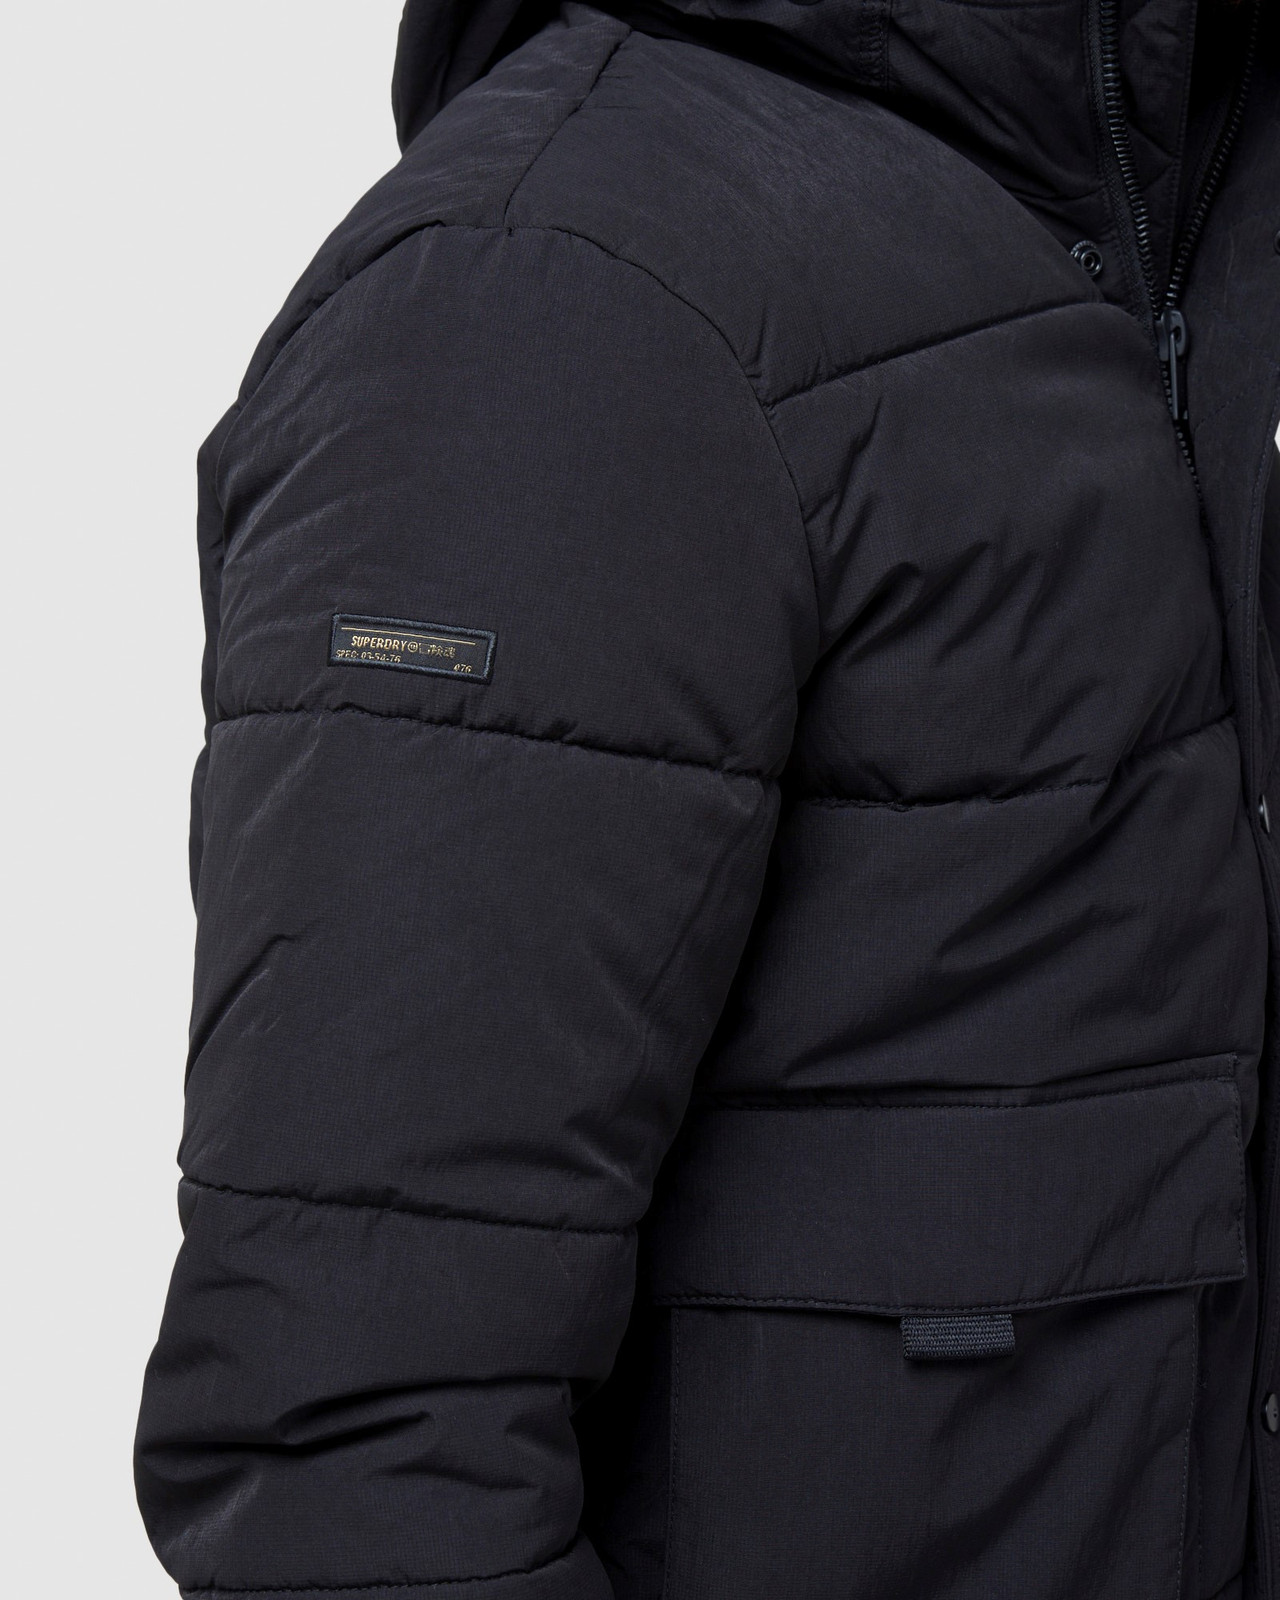 Superdry Mens PIVOT JACKET Black Puffer Jackets 5